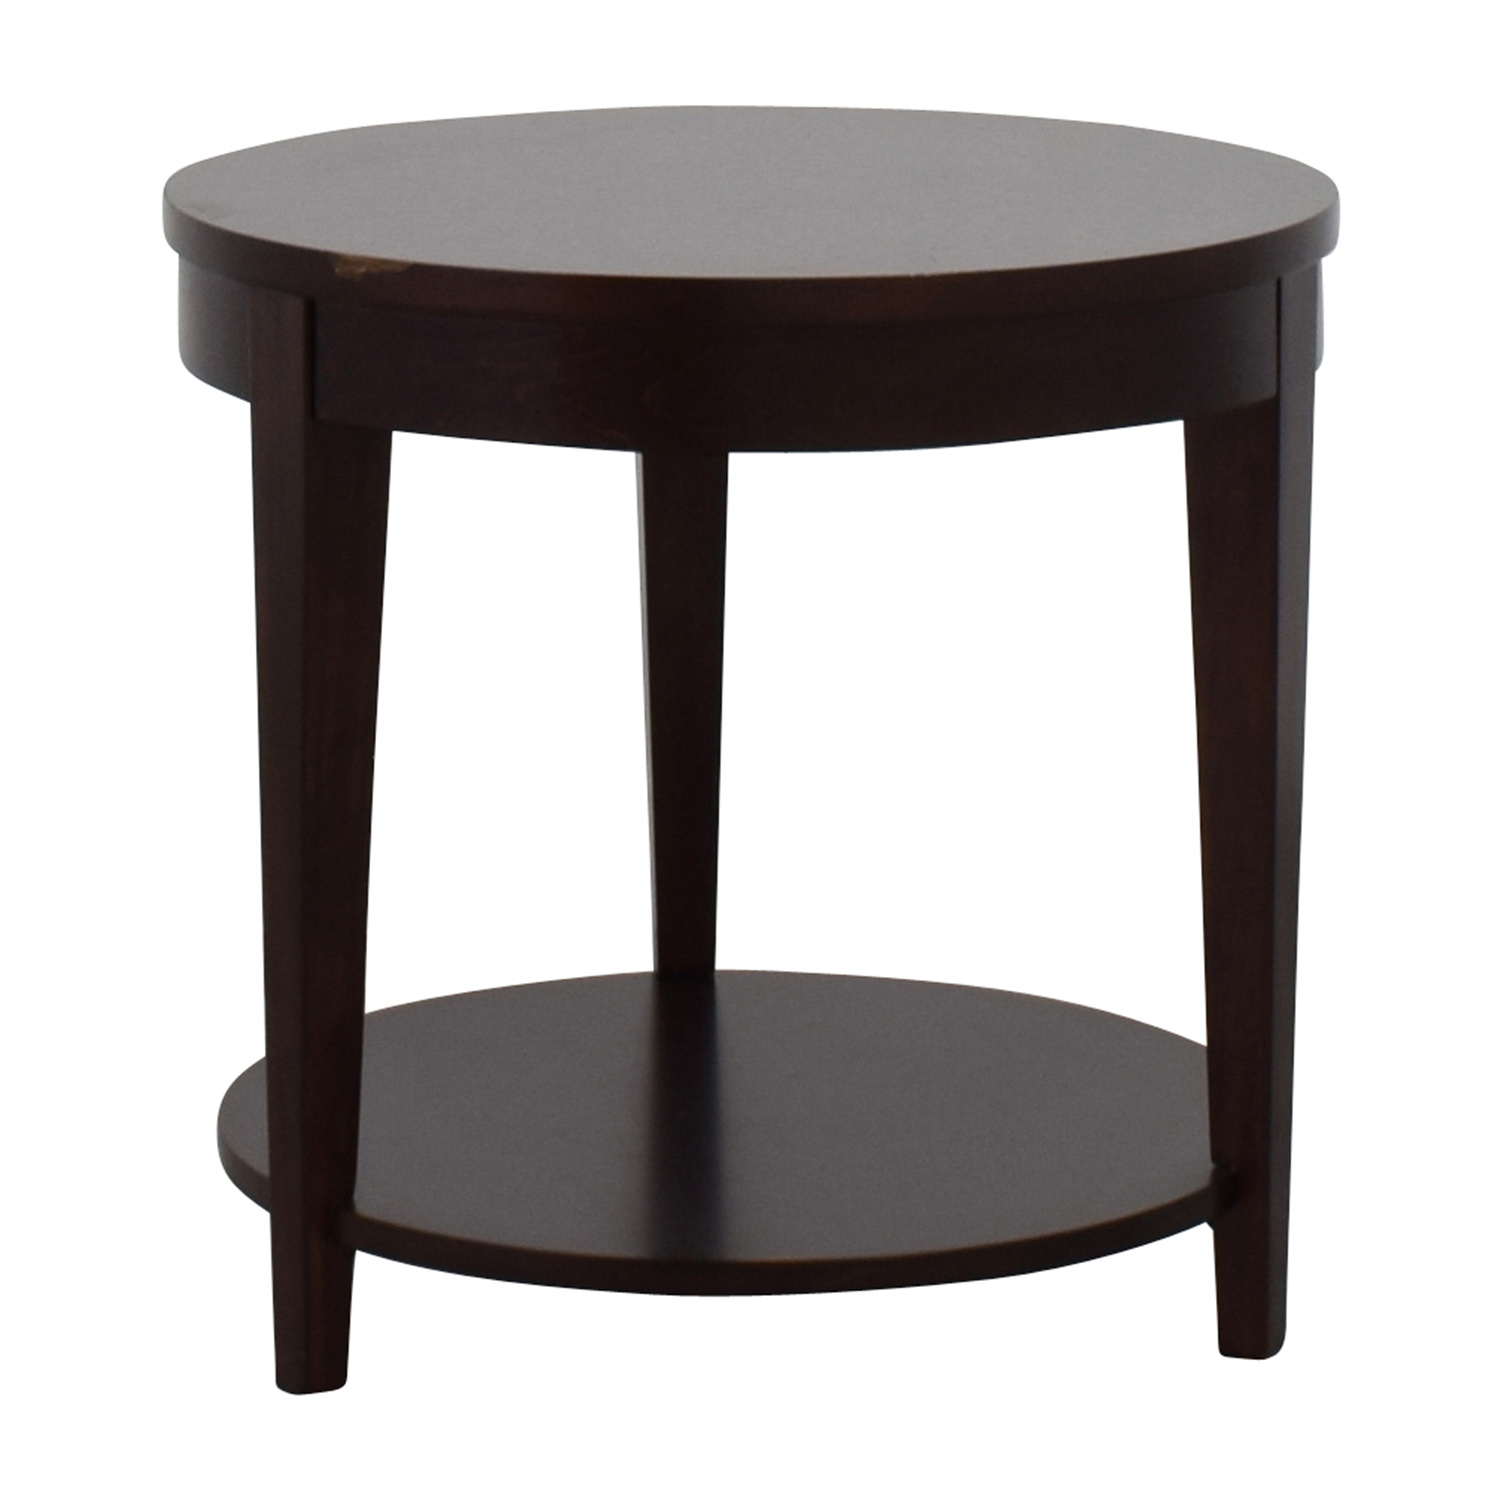 Round Night Stand Tables Droughtrelief Org